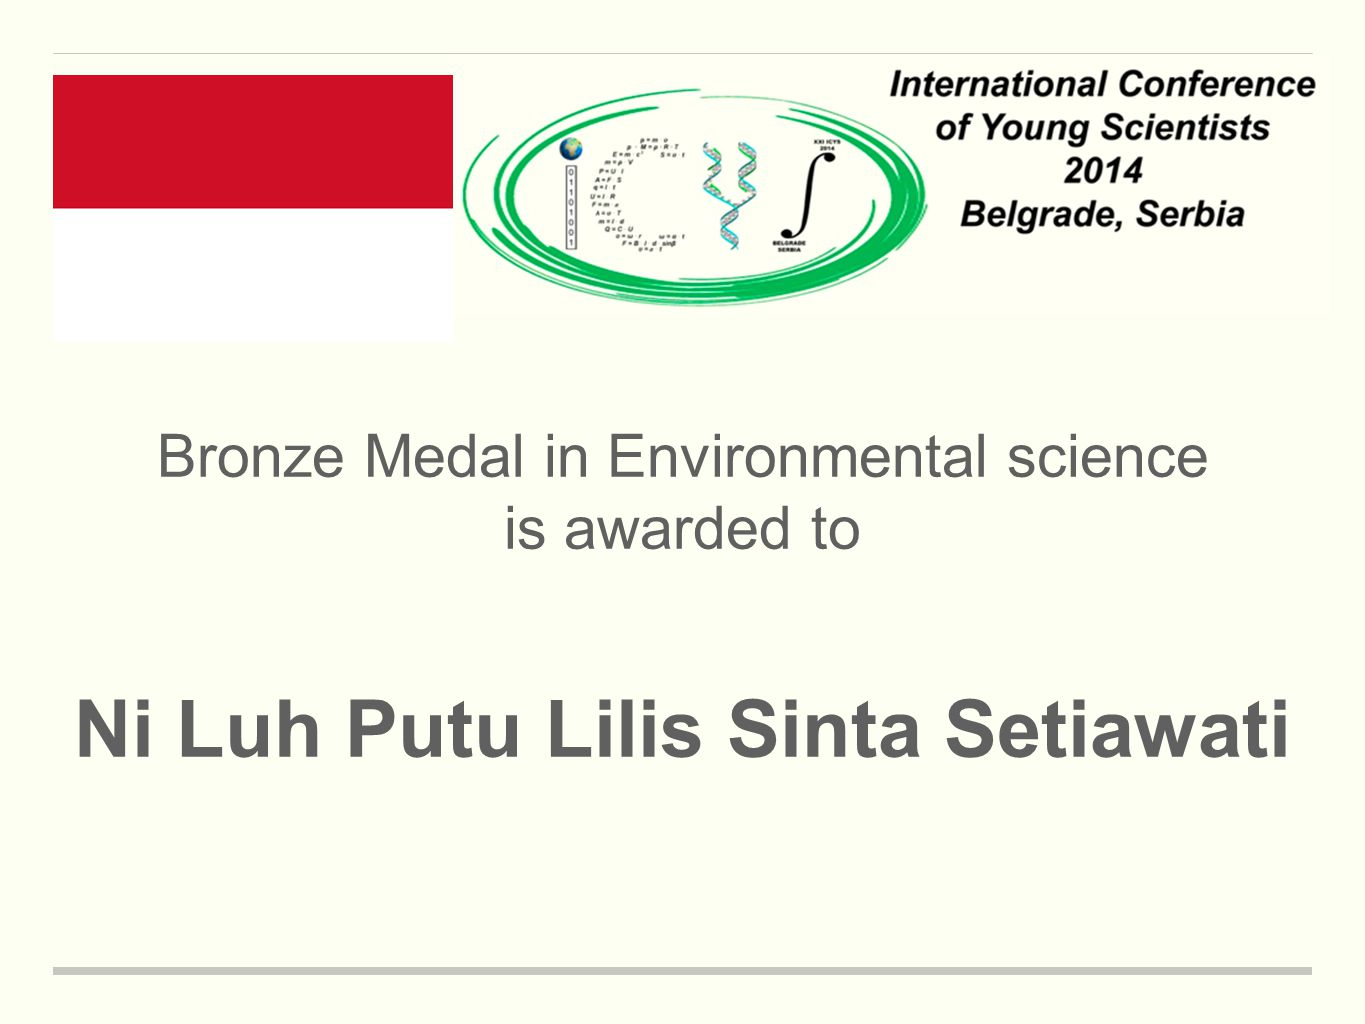 Bronze Medal in Environmental science is awarded to Ni Luh Putu Lilis Sinta Setiawati